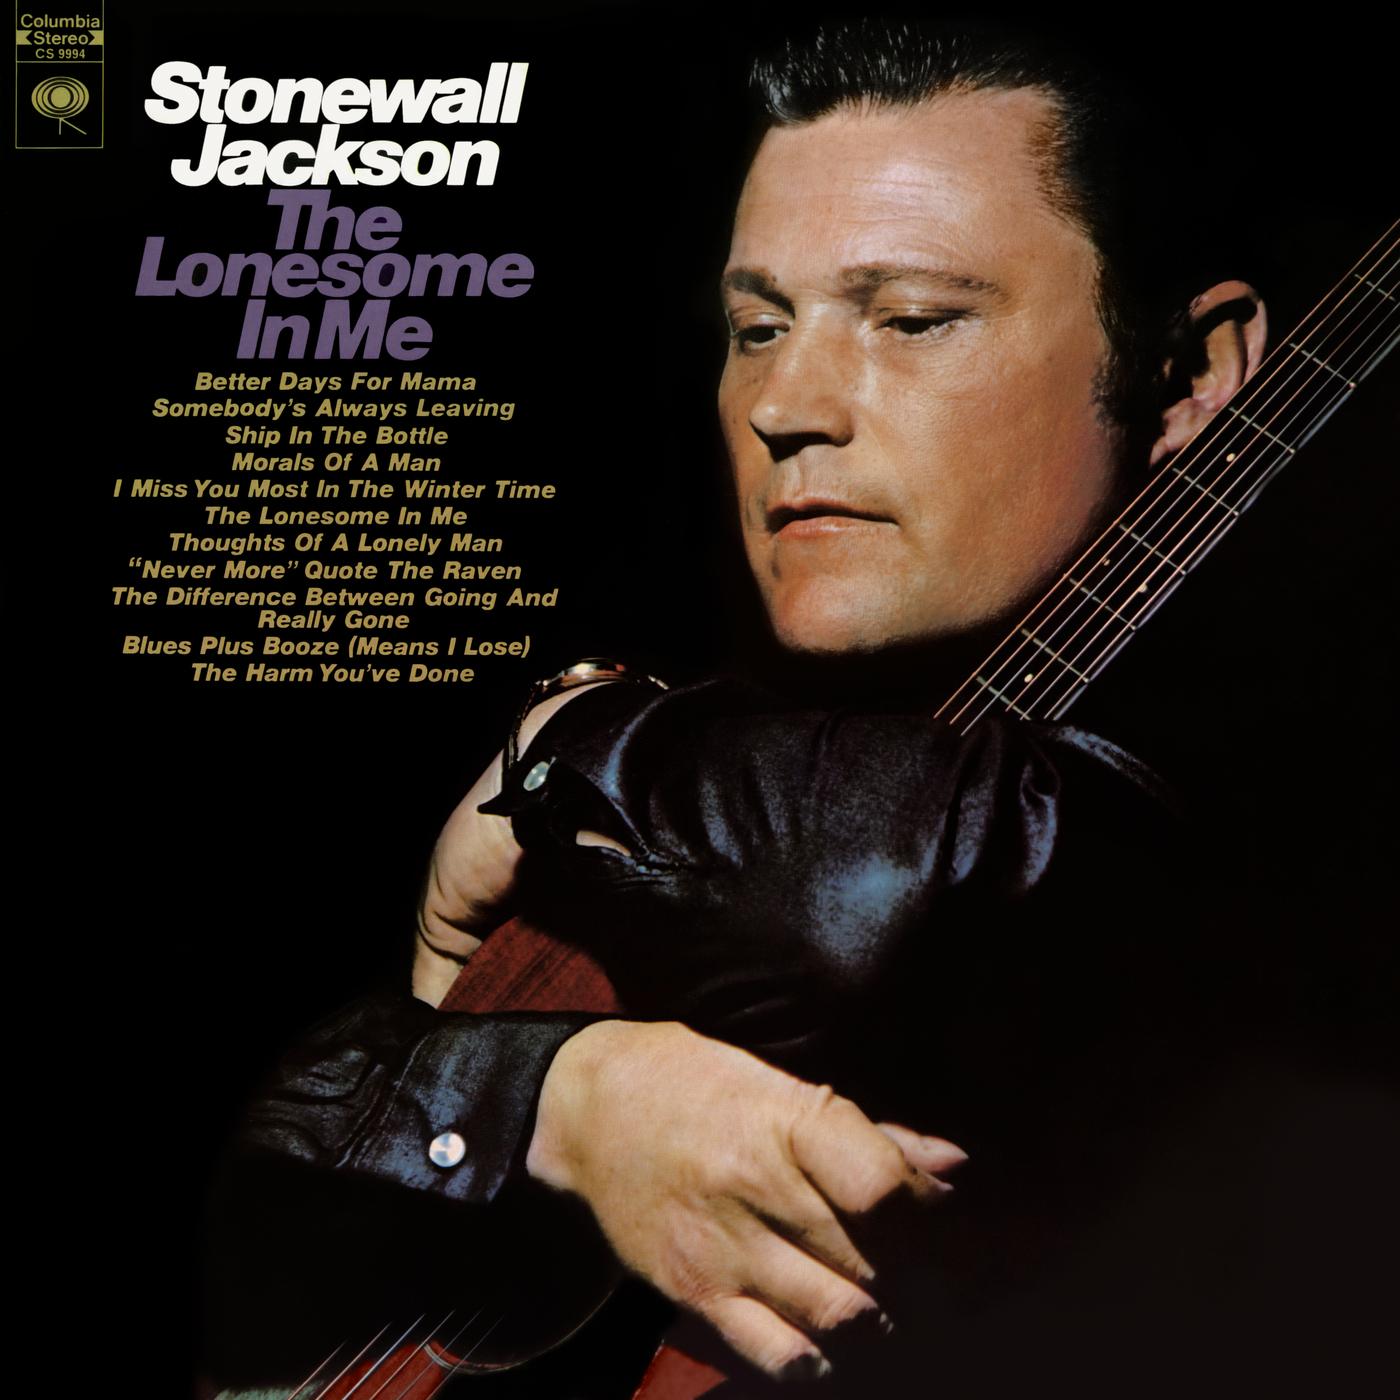 The Lonesome In Me - Stonewall Jackson